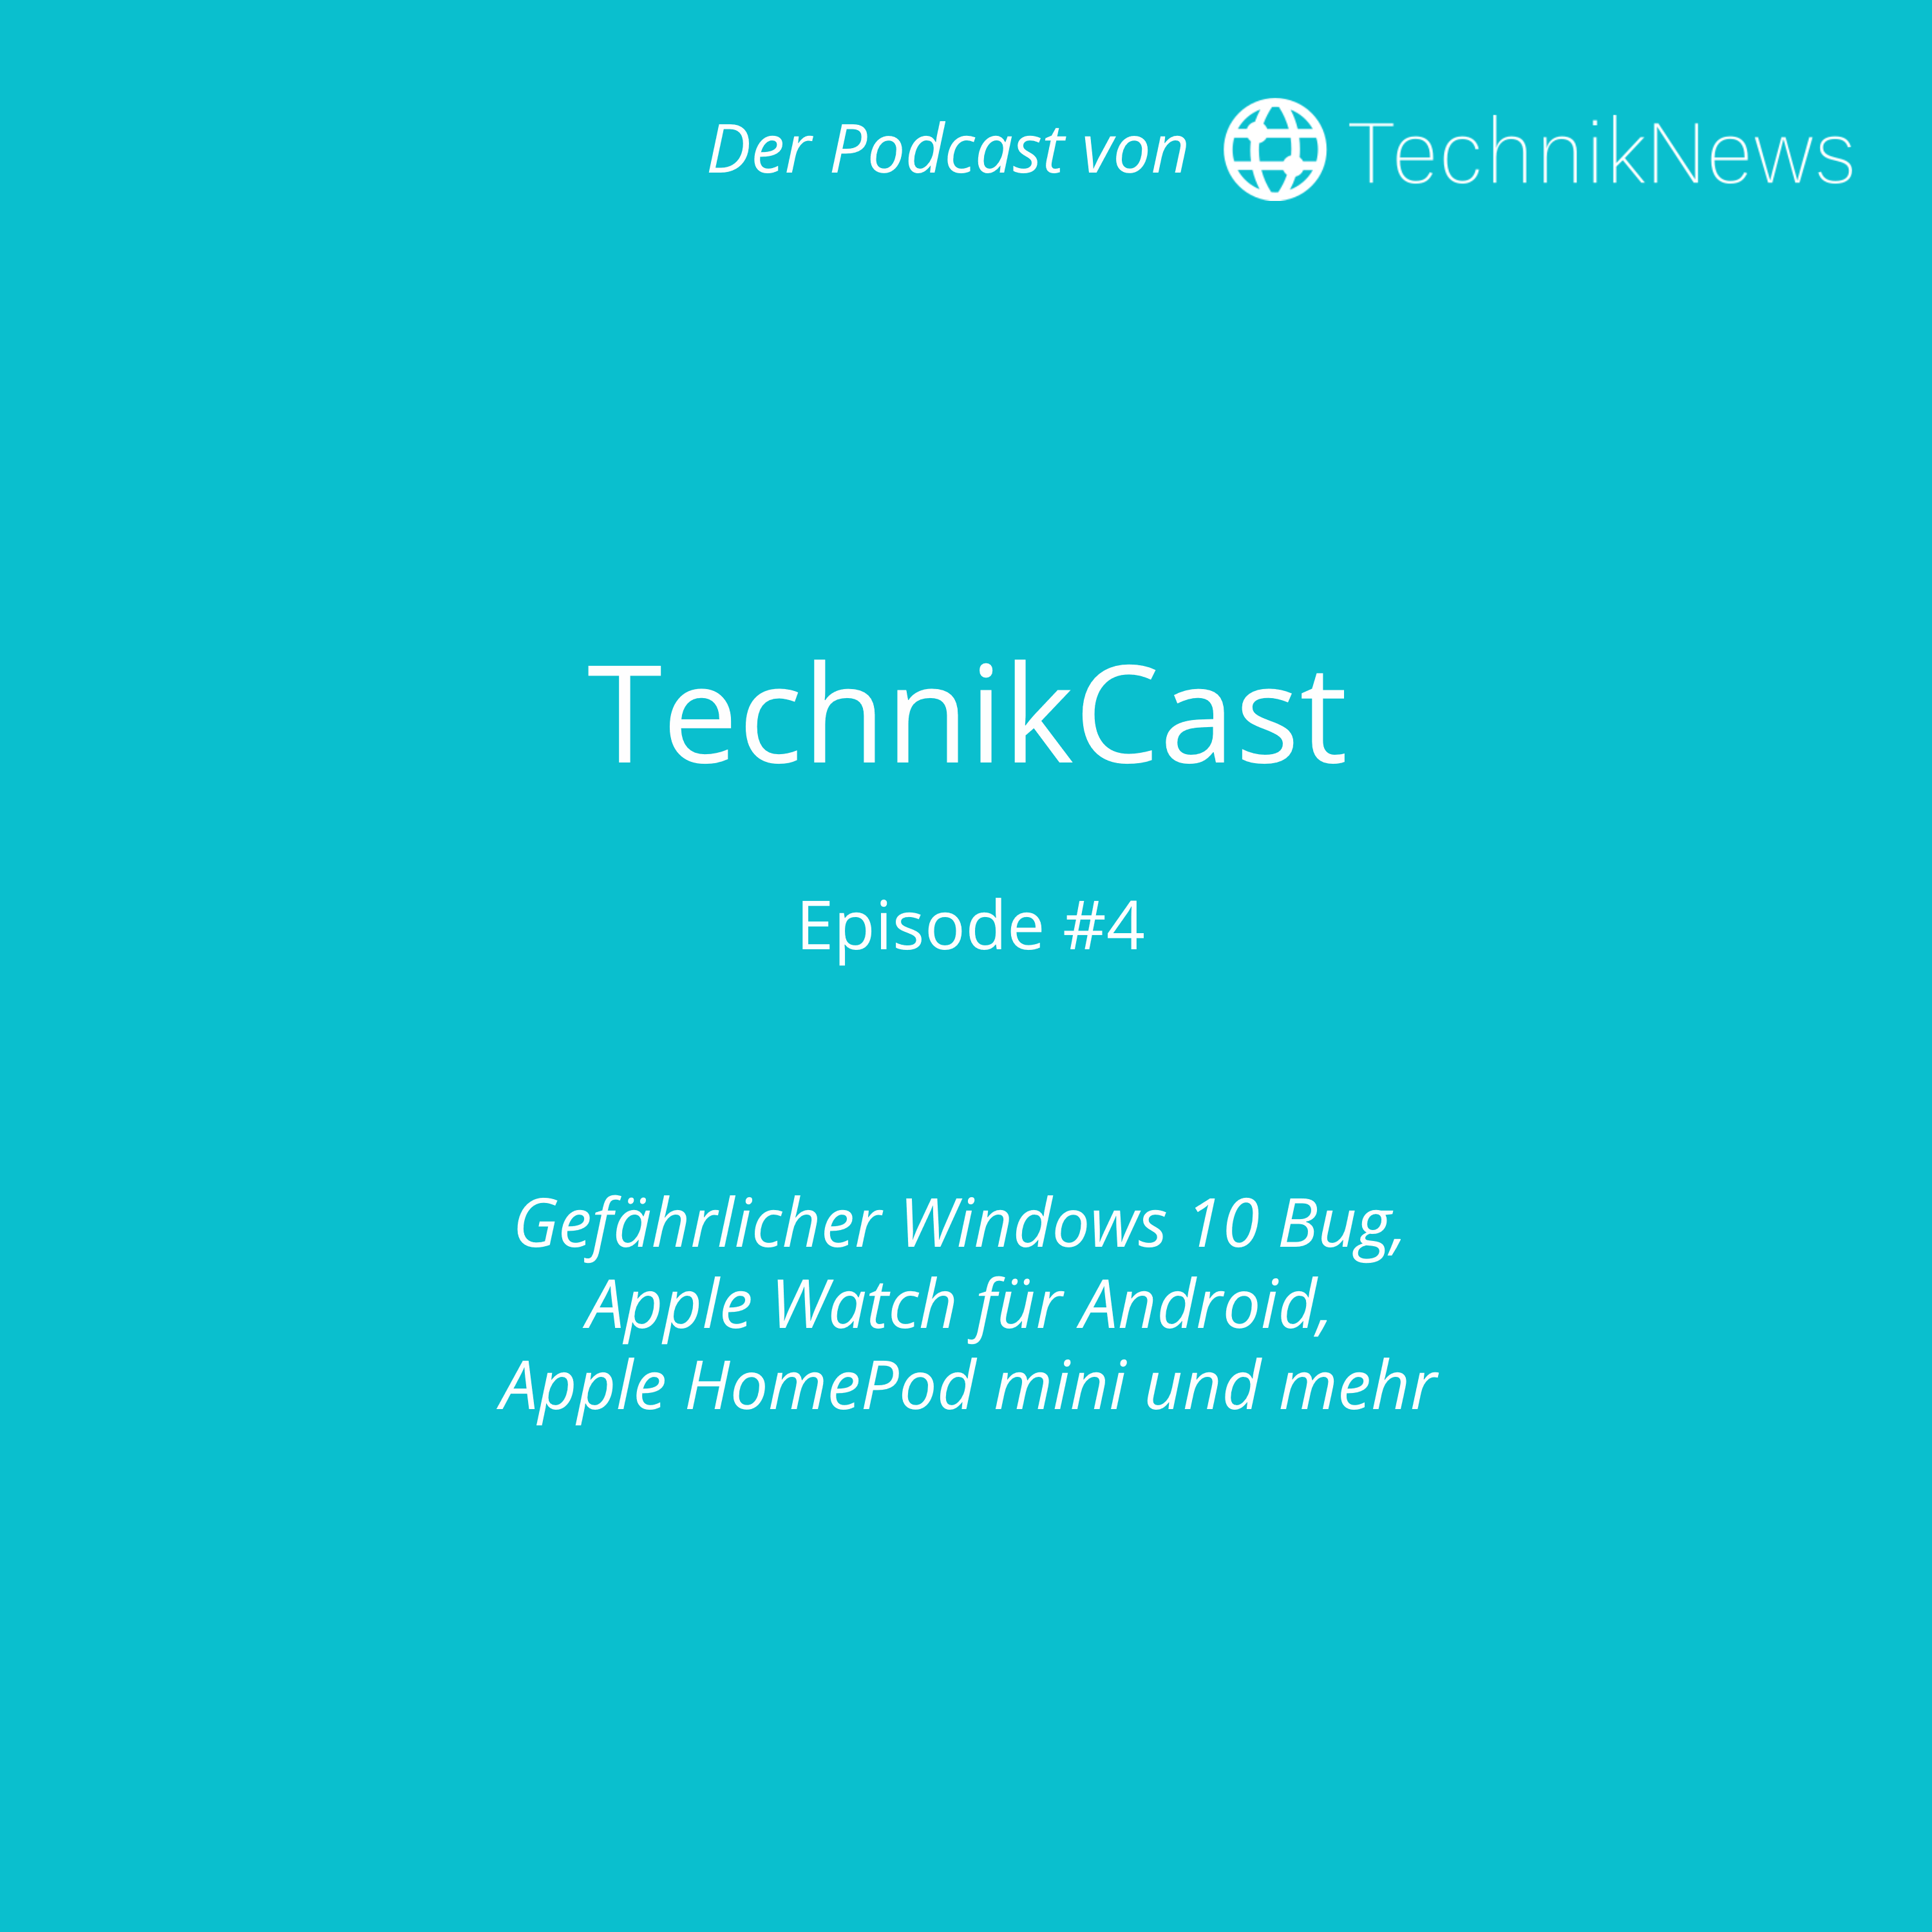 TechnikCast Episode #4